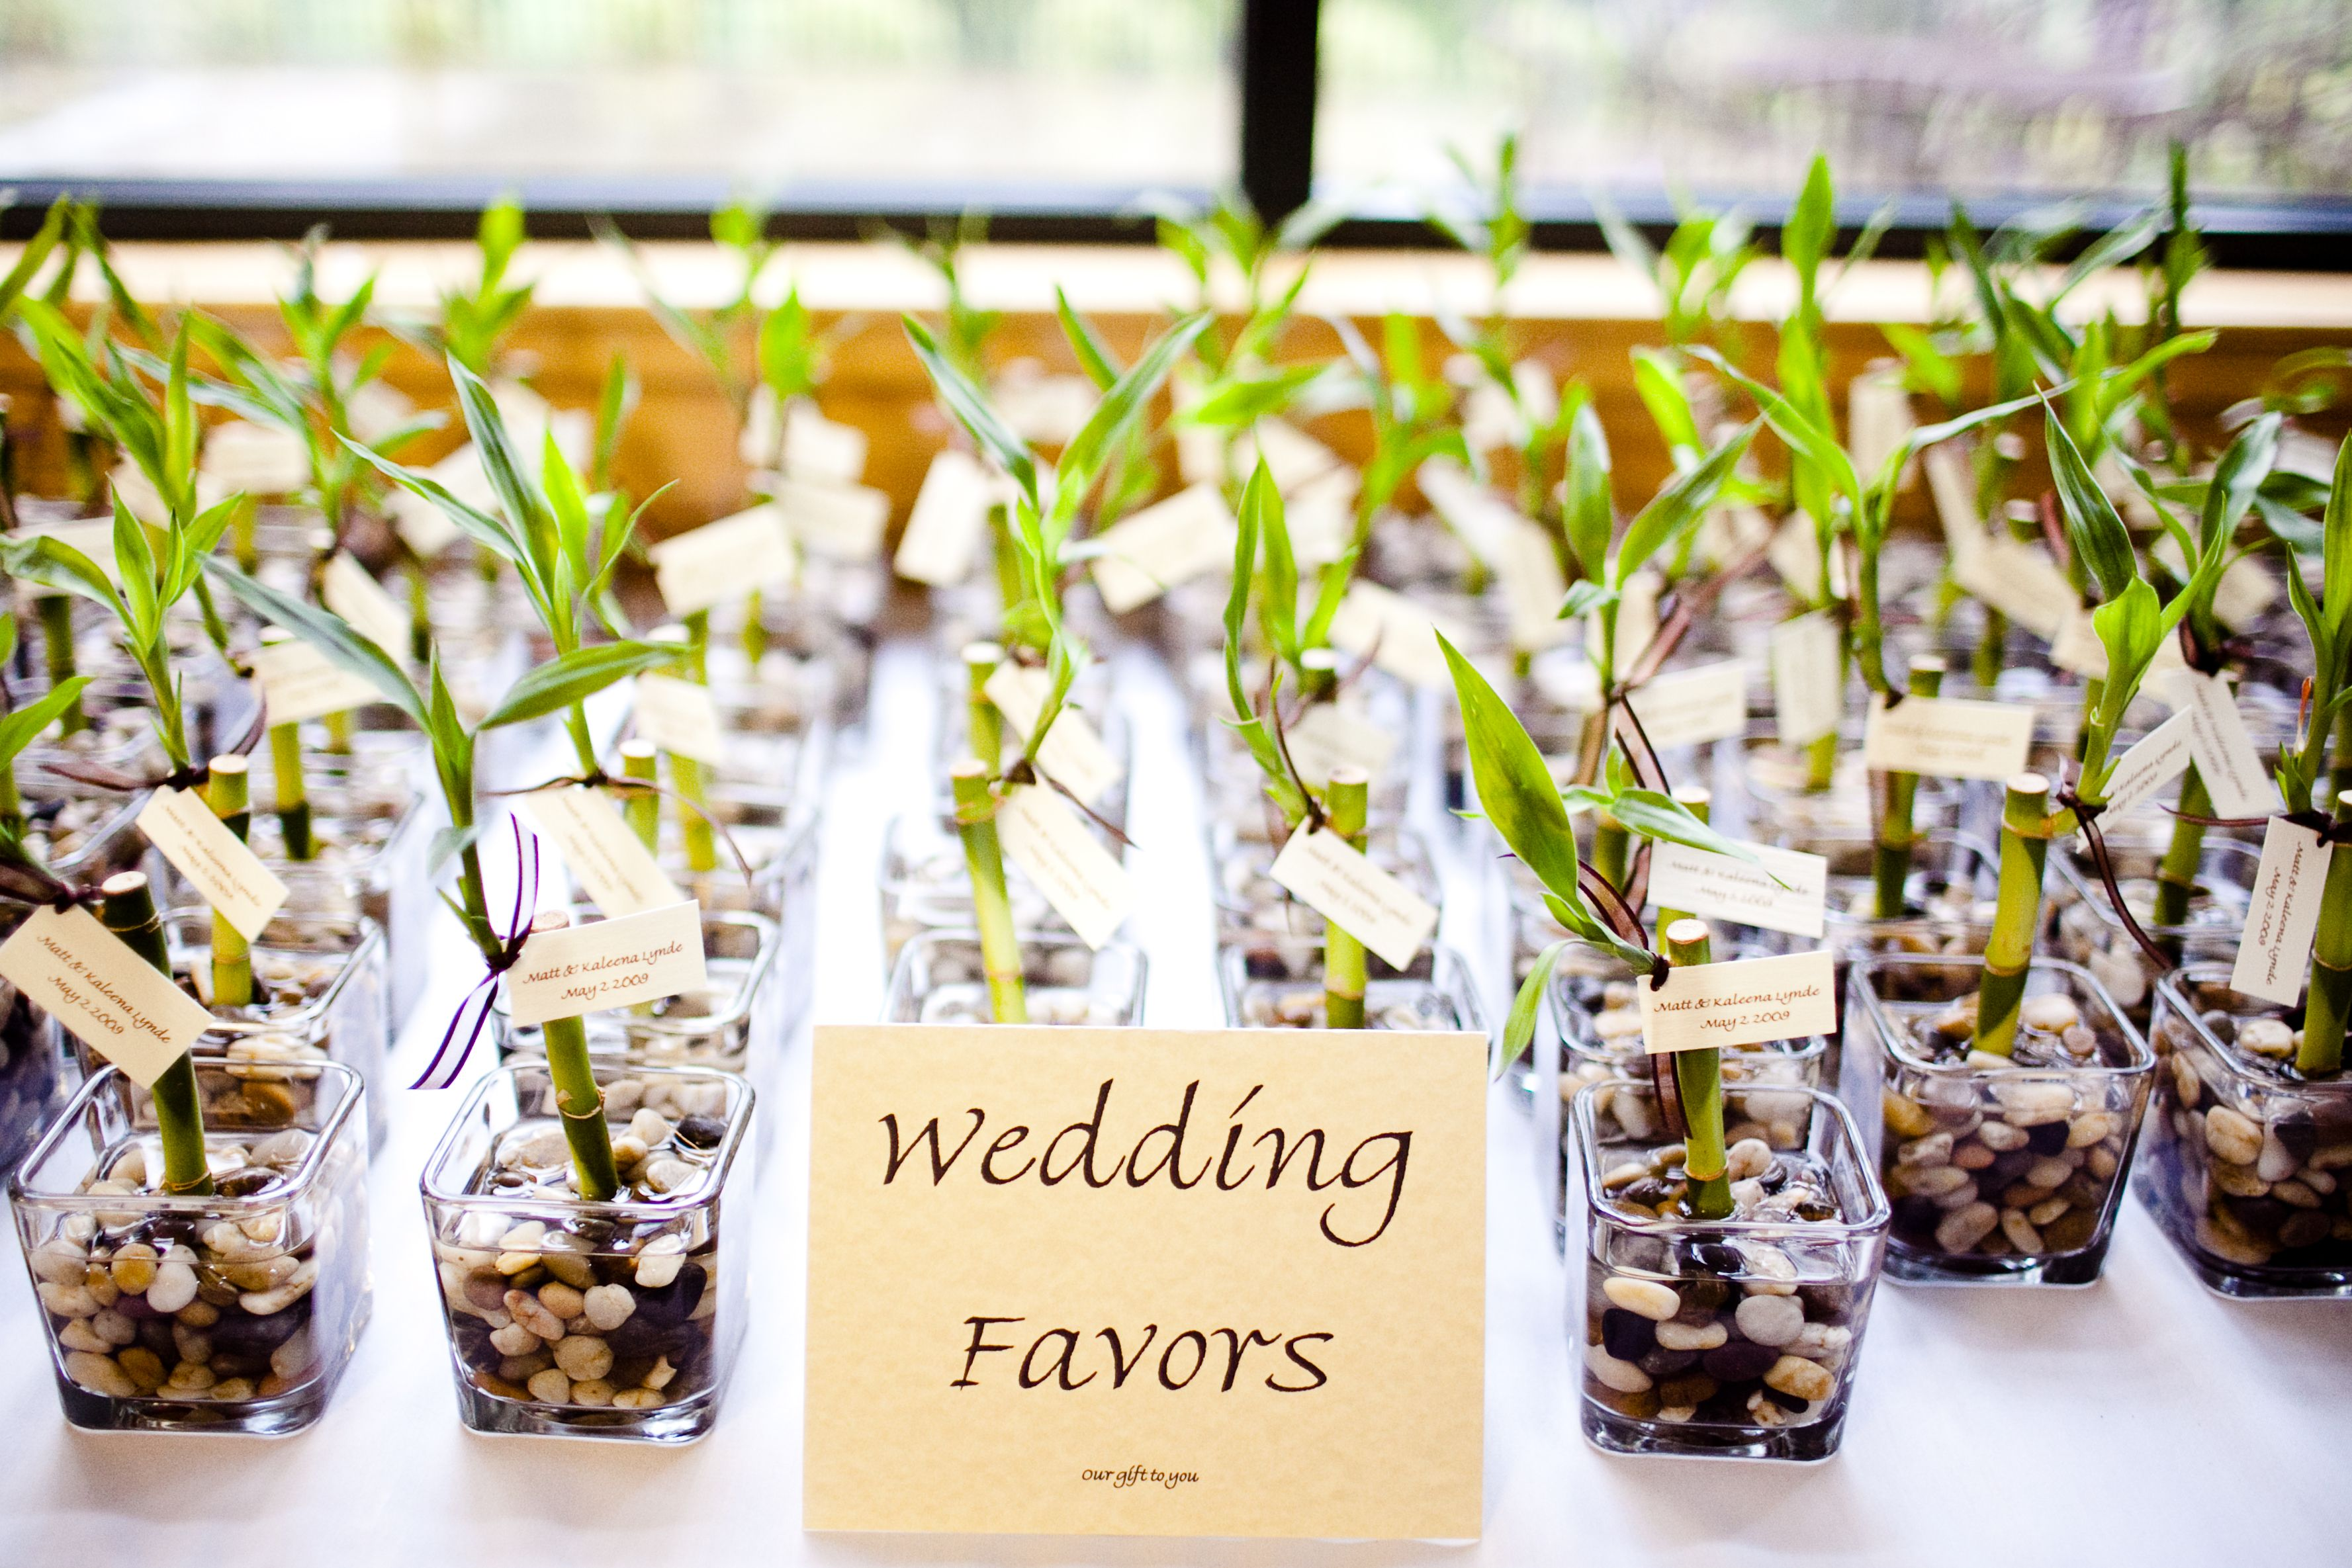 Buy Wedding Gifts: Wedding Favors, I Got Box's Of 10 Square Vases For 5